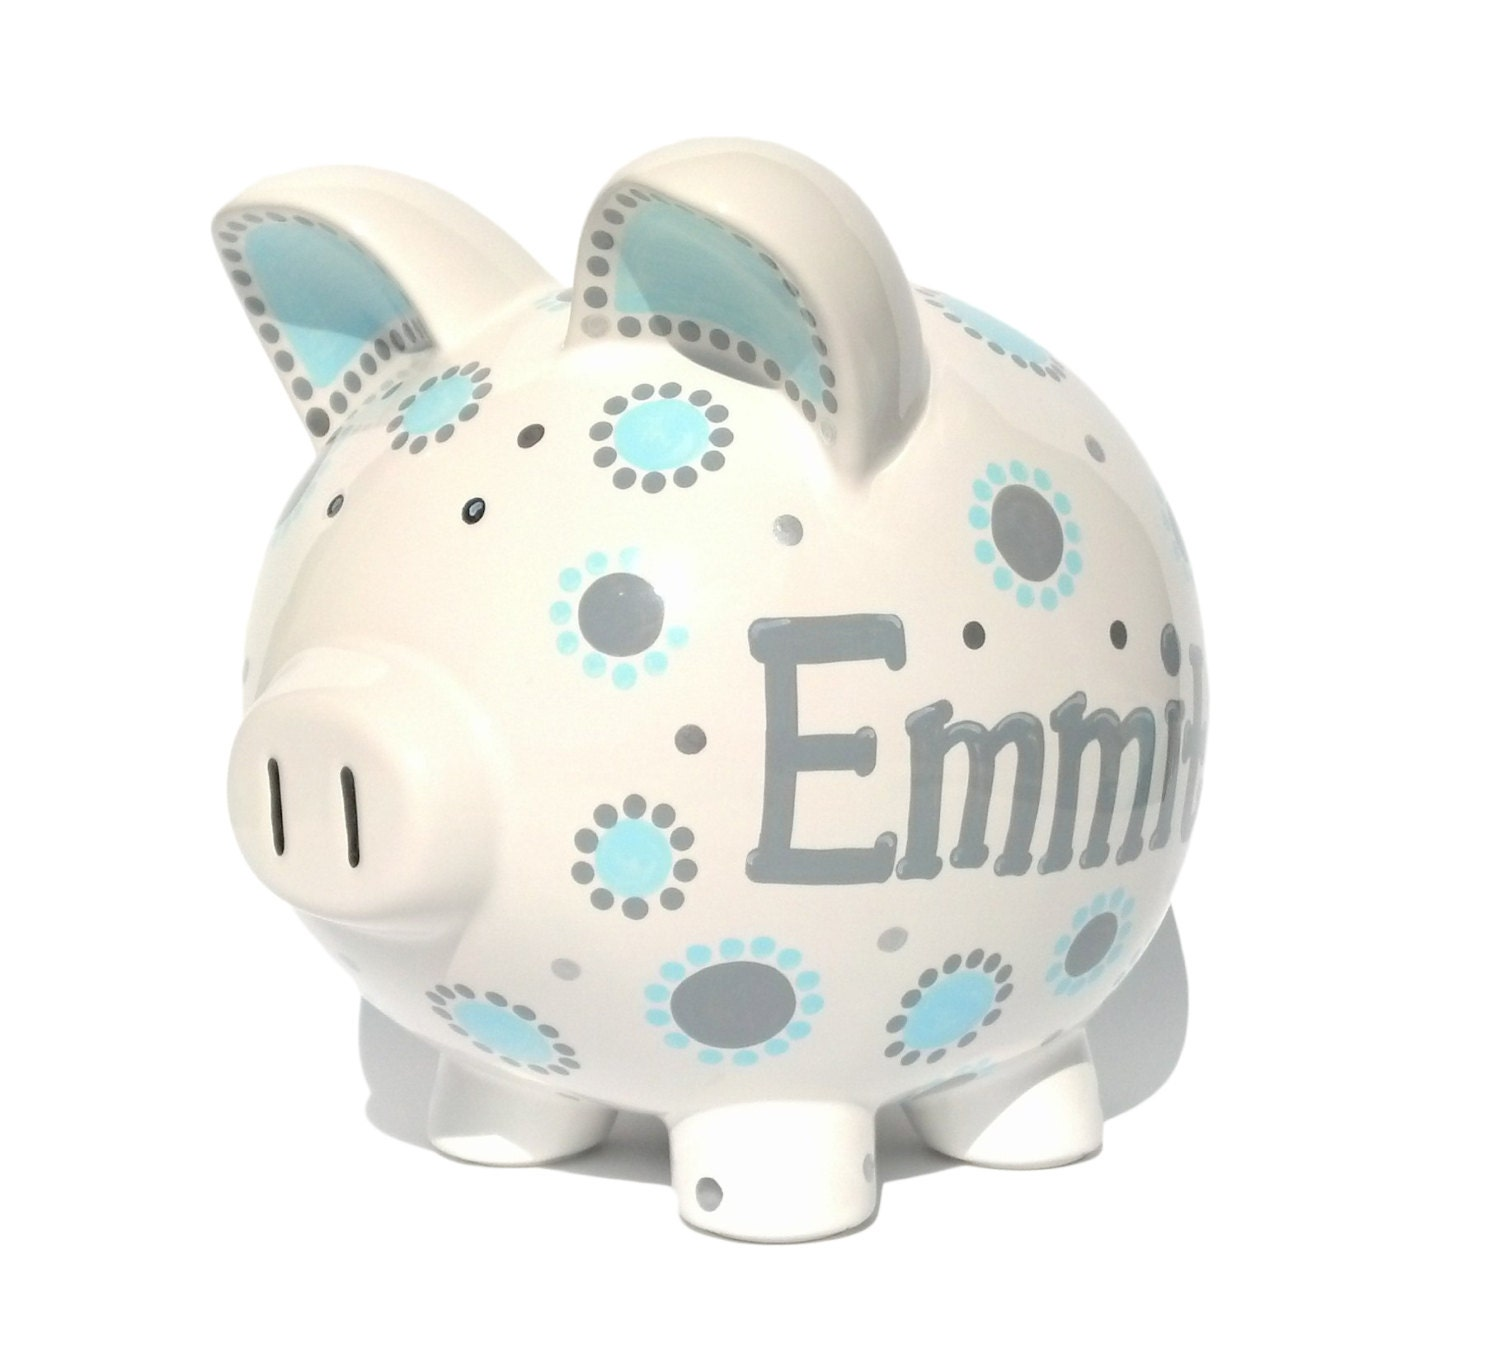 Boys blue and gray piggy bank ceramic hand painted for How to paint a ceramic piggy bank